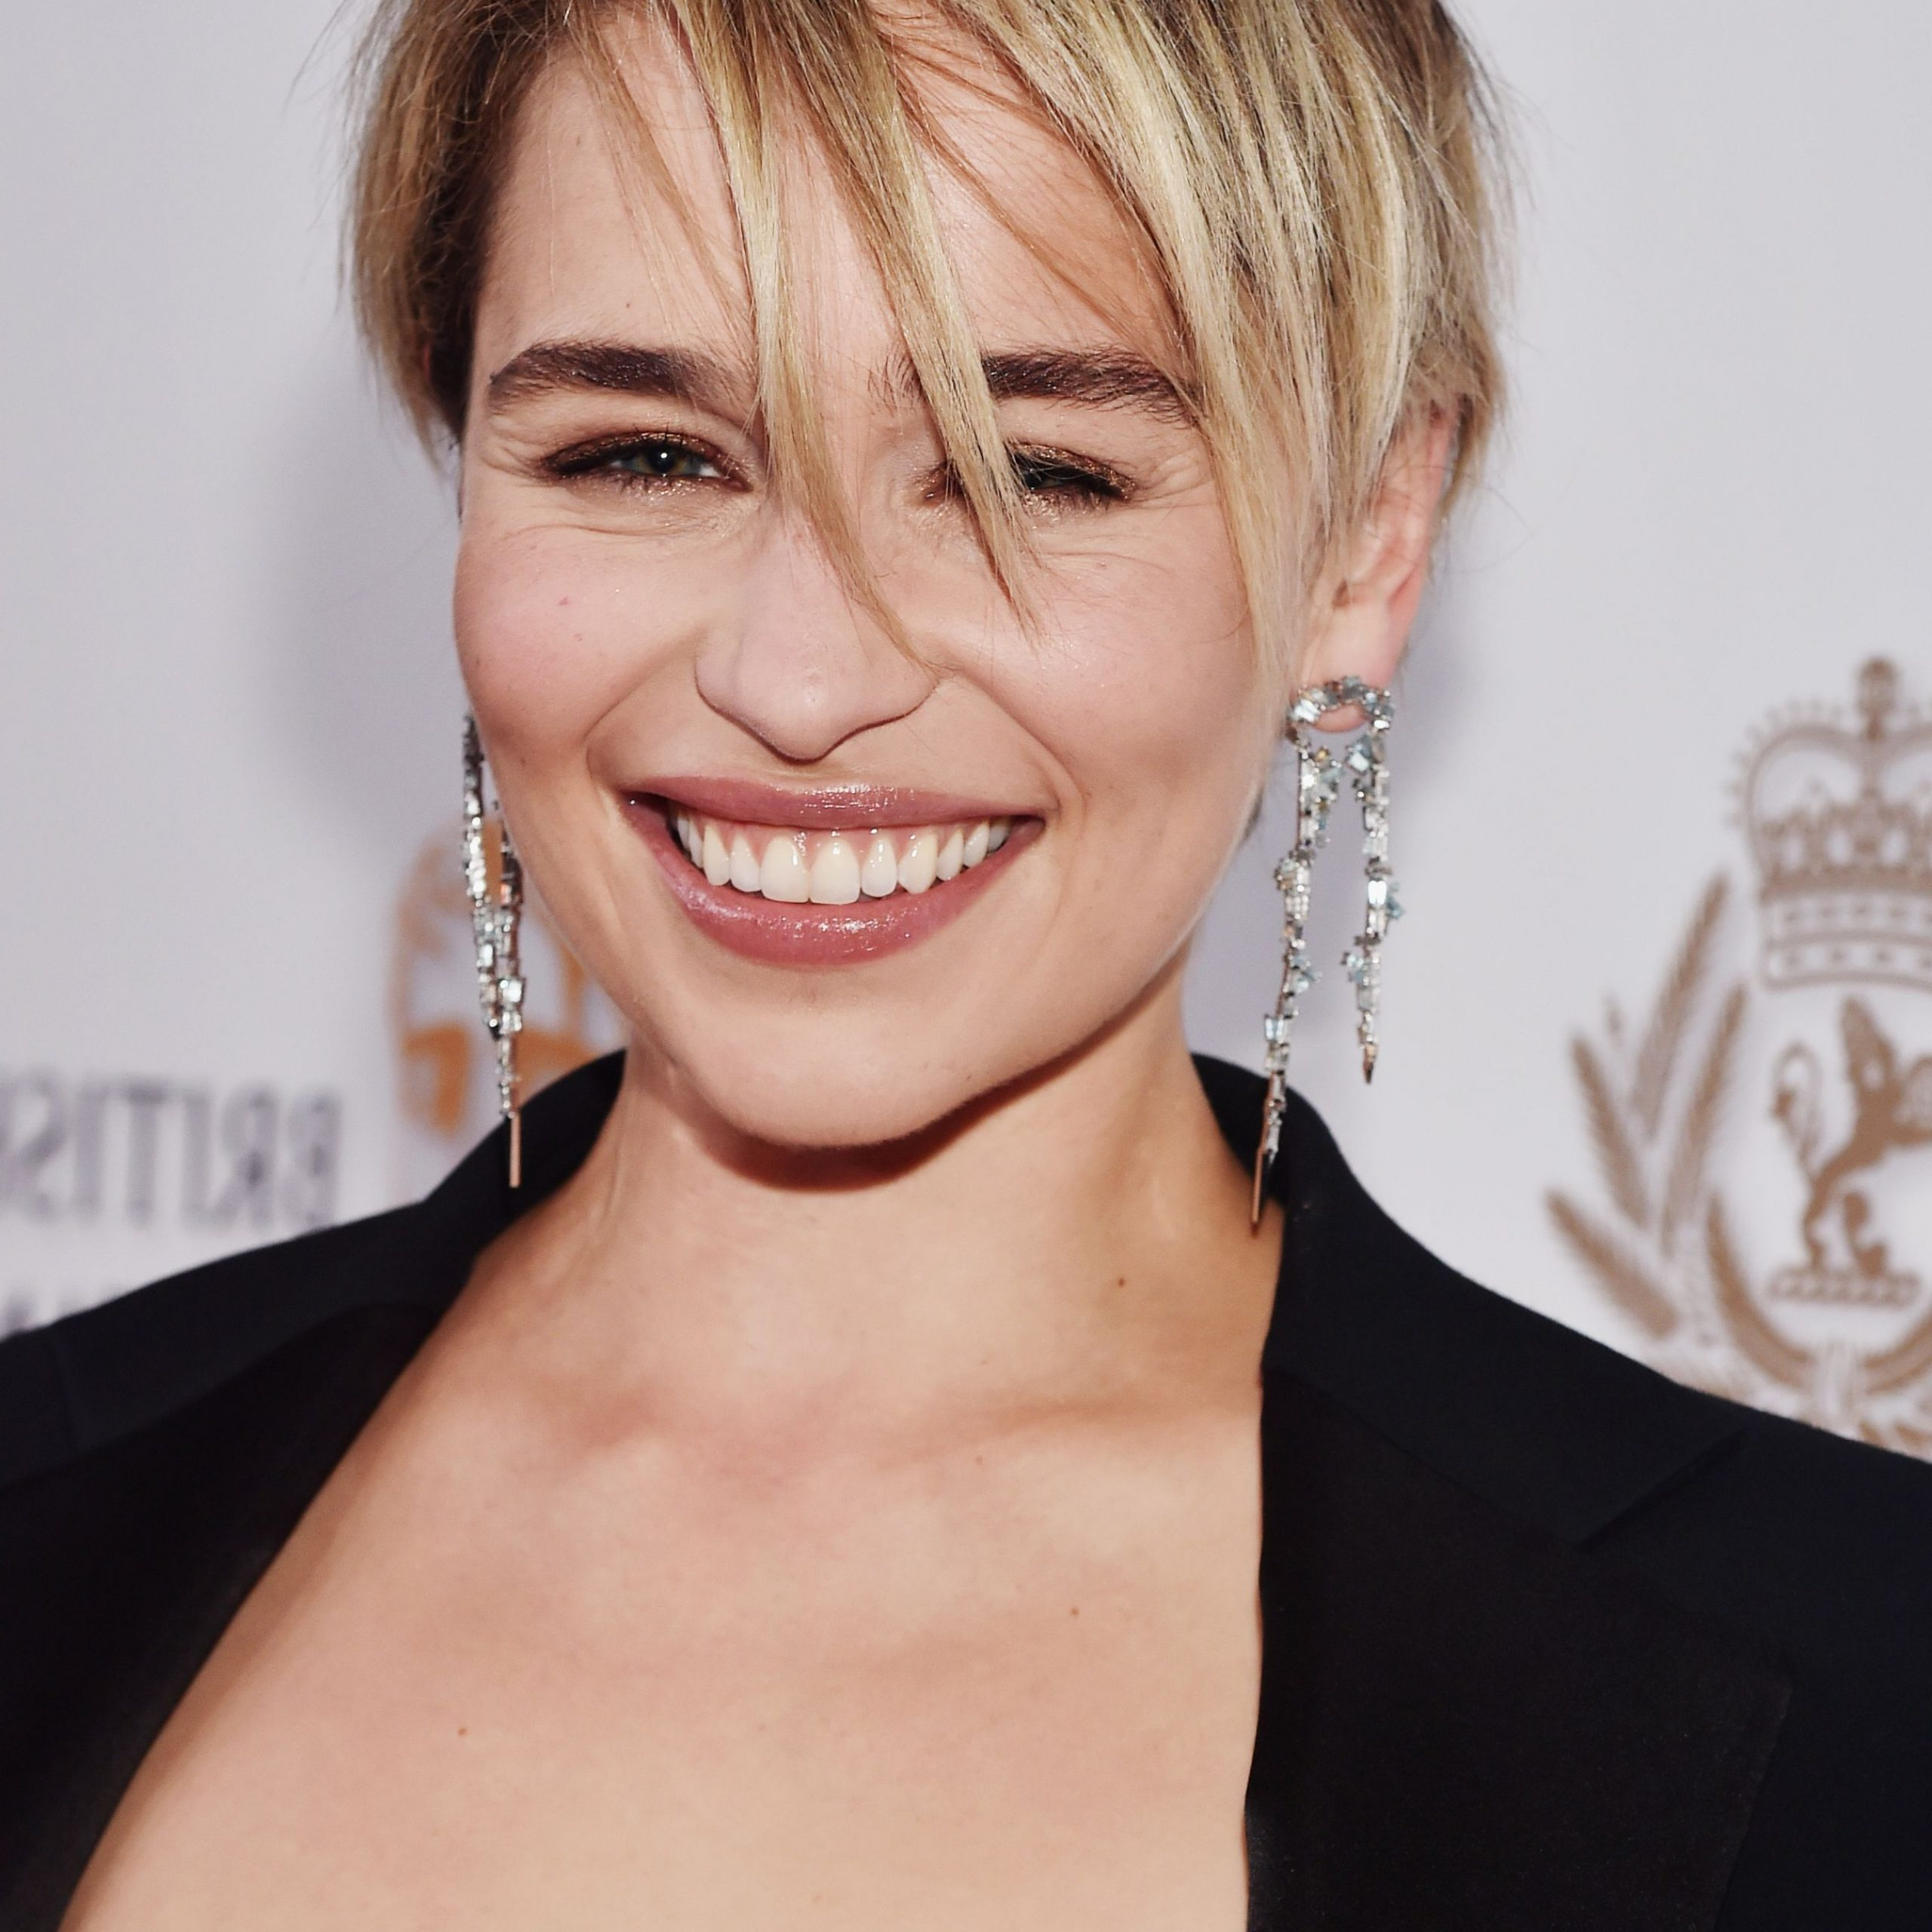 70 Best Pixie Cut Hairstyle Ideas 2019 – Cute Celebrity Regarding Neat Pixie Haircuts For Gamine Girls (View 16 of 20)